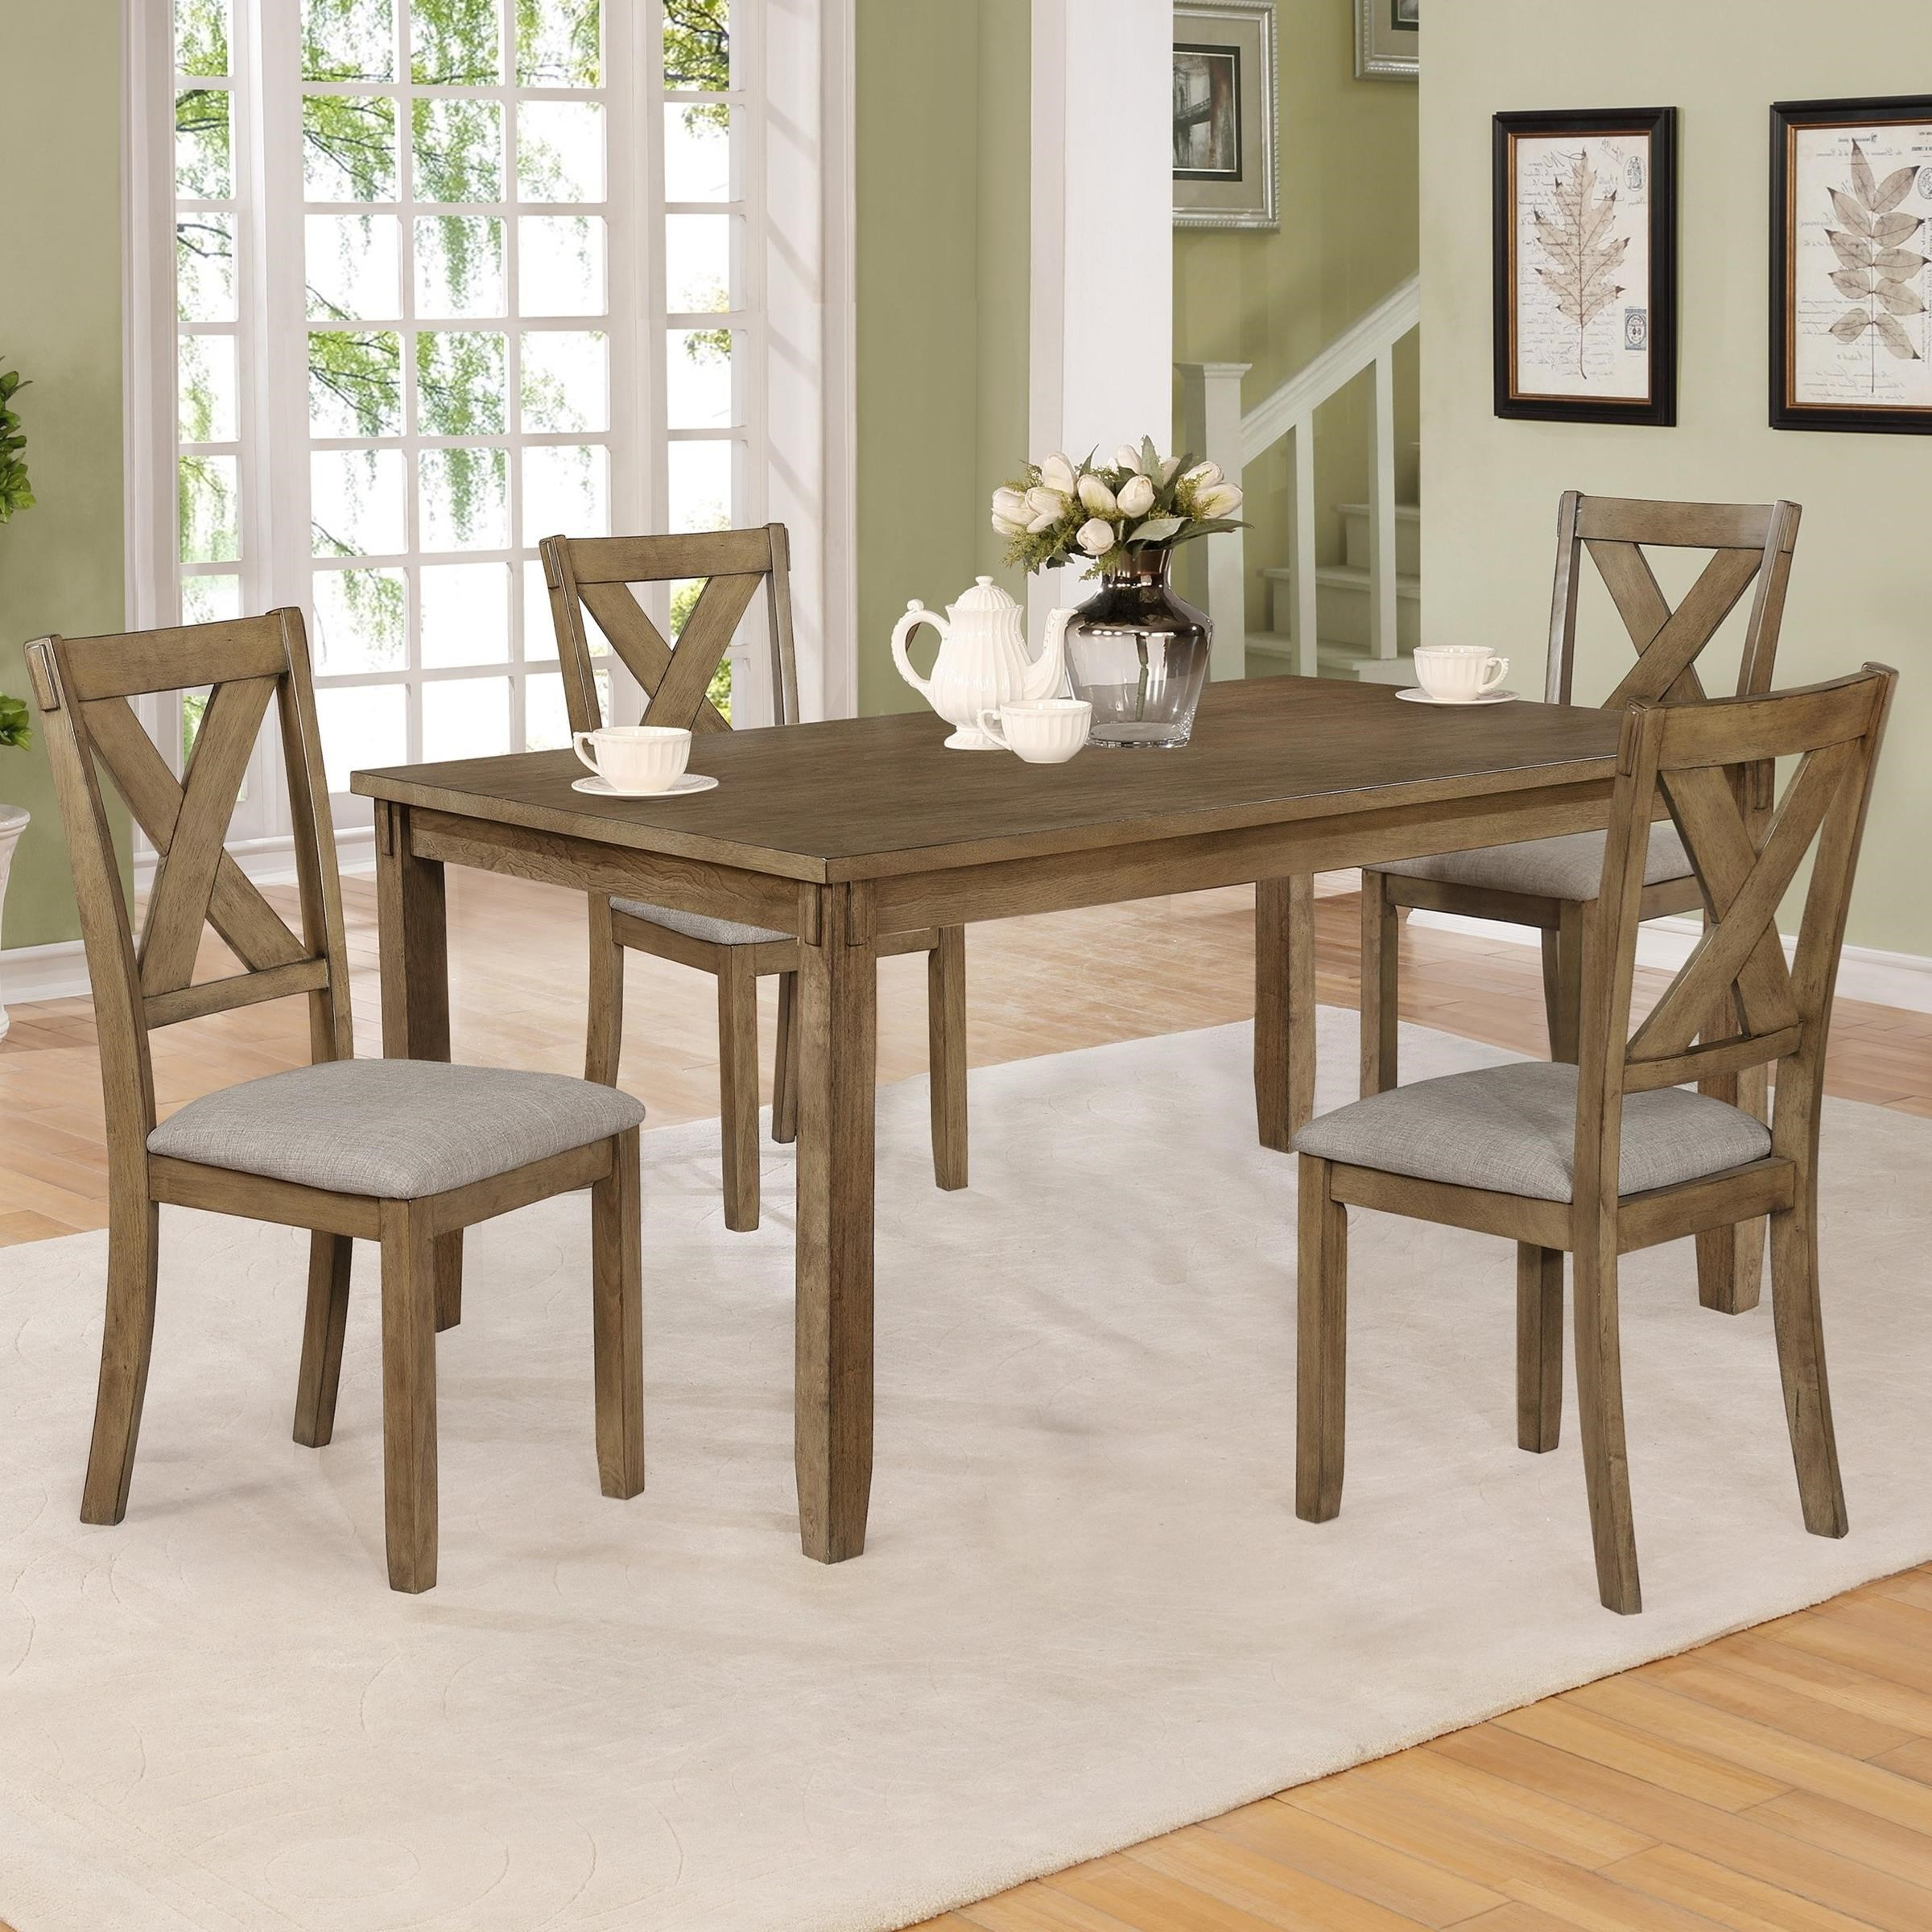 Clara 5 Piece Table and Chairs Set by Crown Mark at Northeast Factory Direct